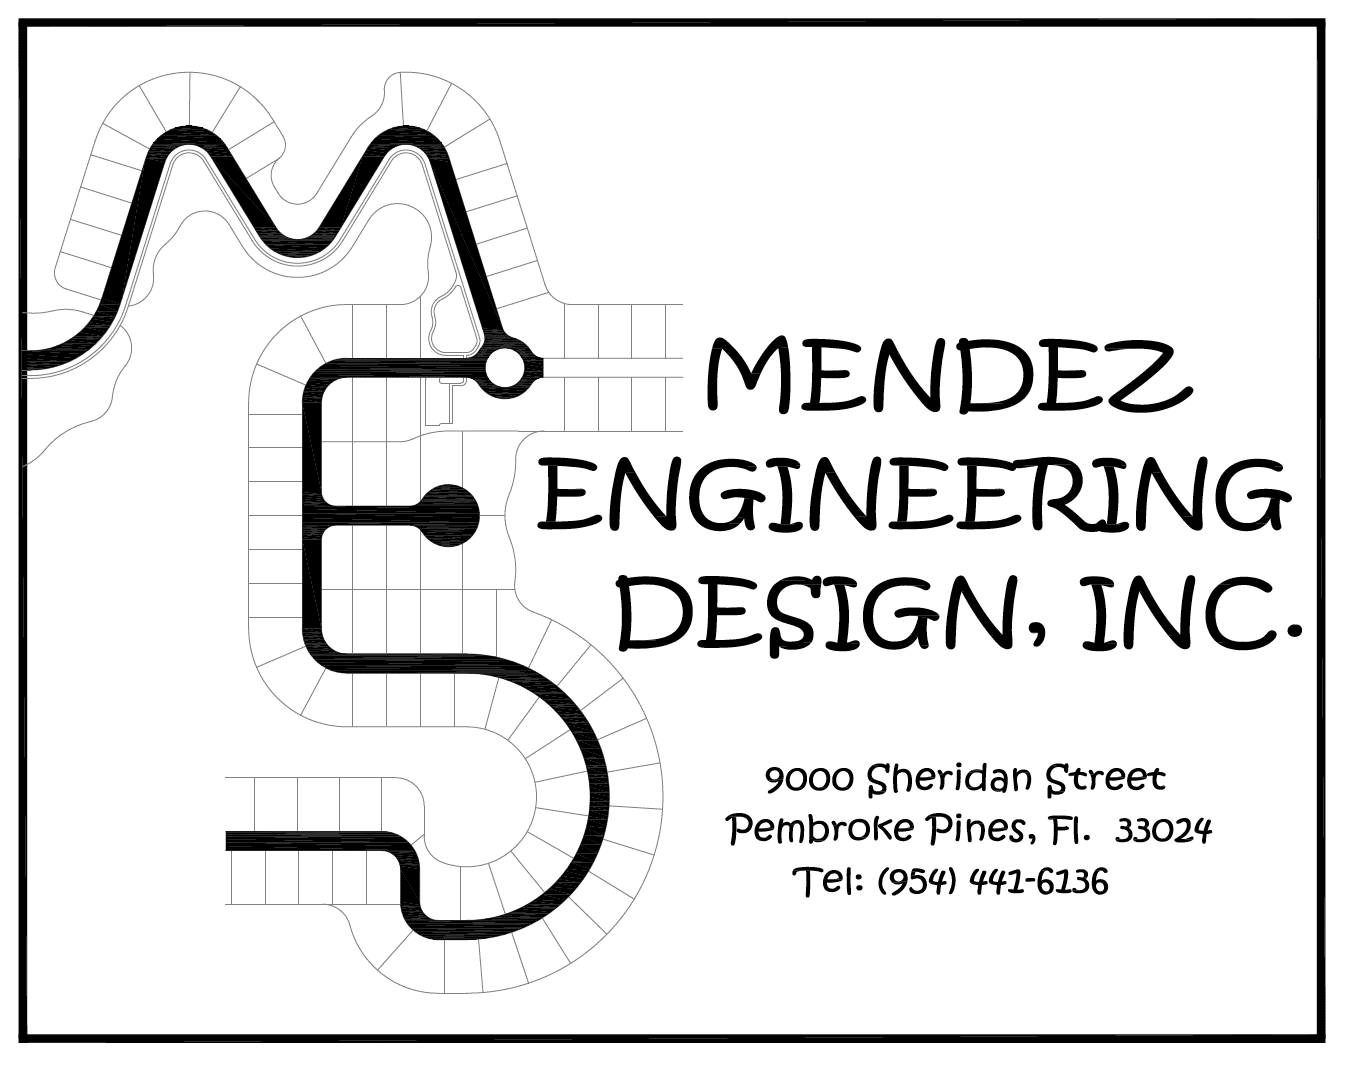 Mendez Engineering Design, INC.